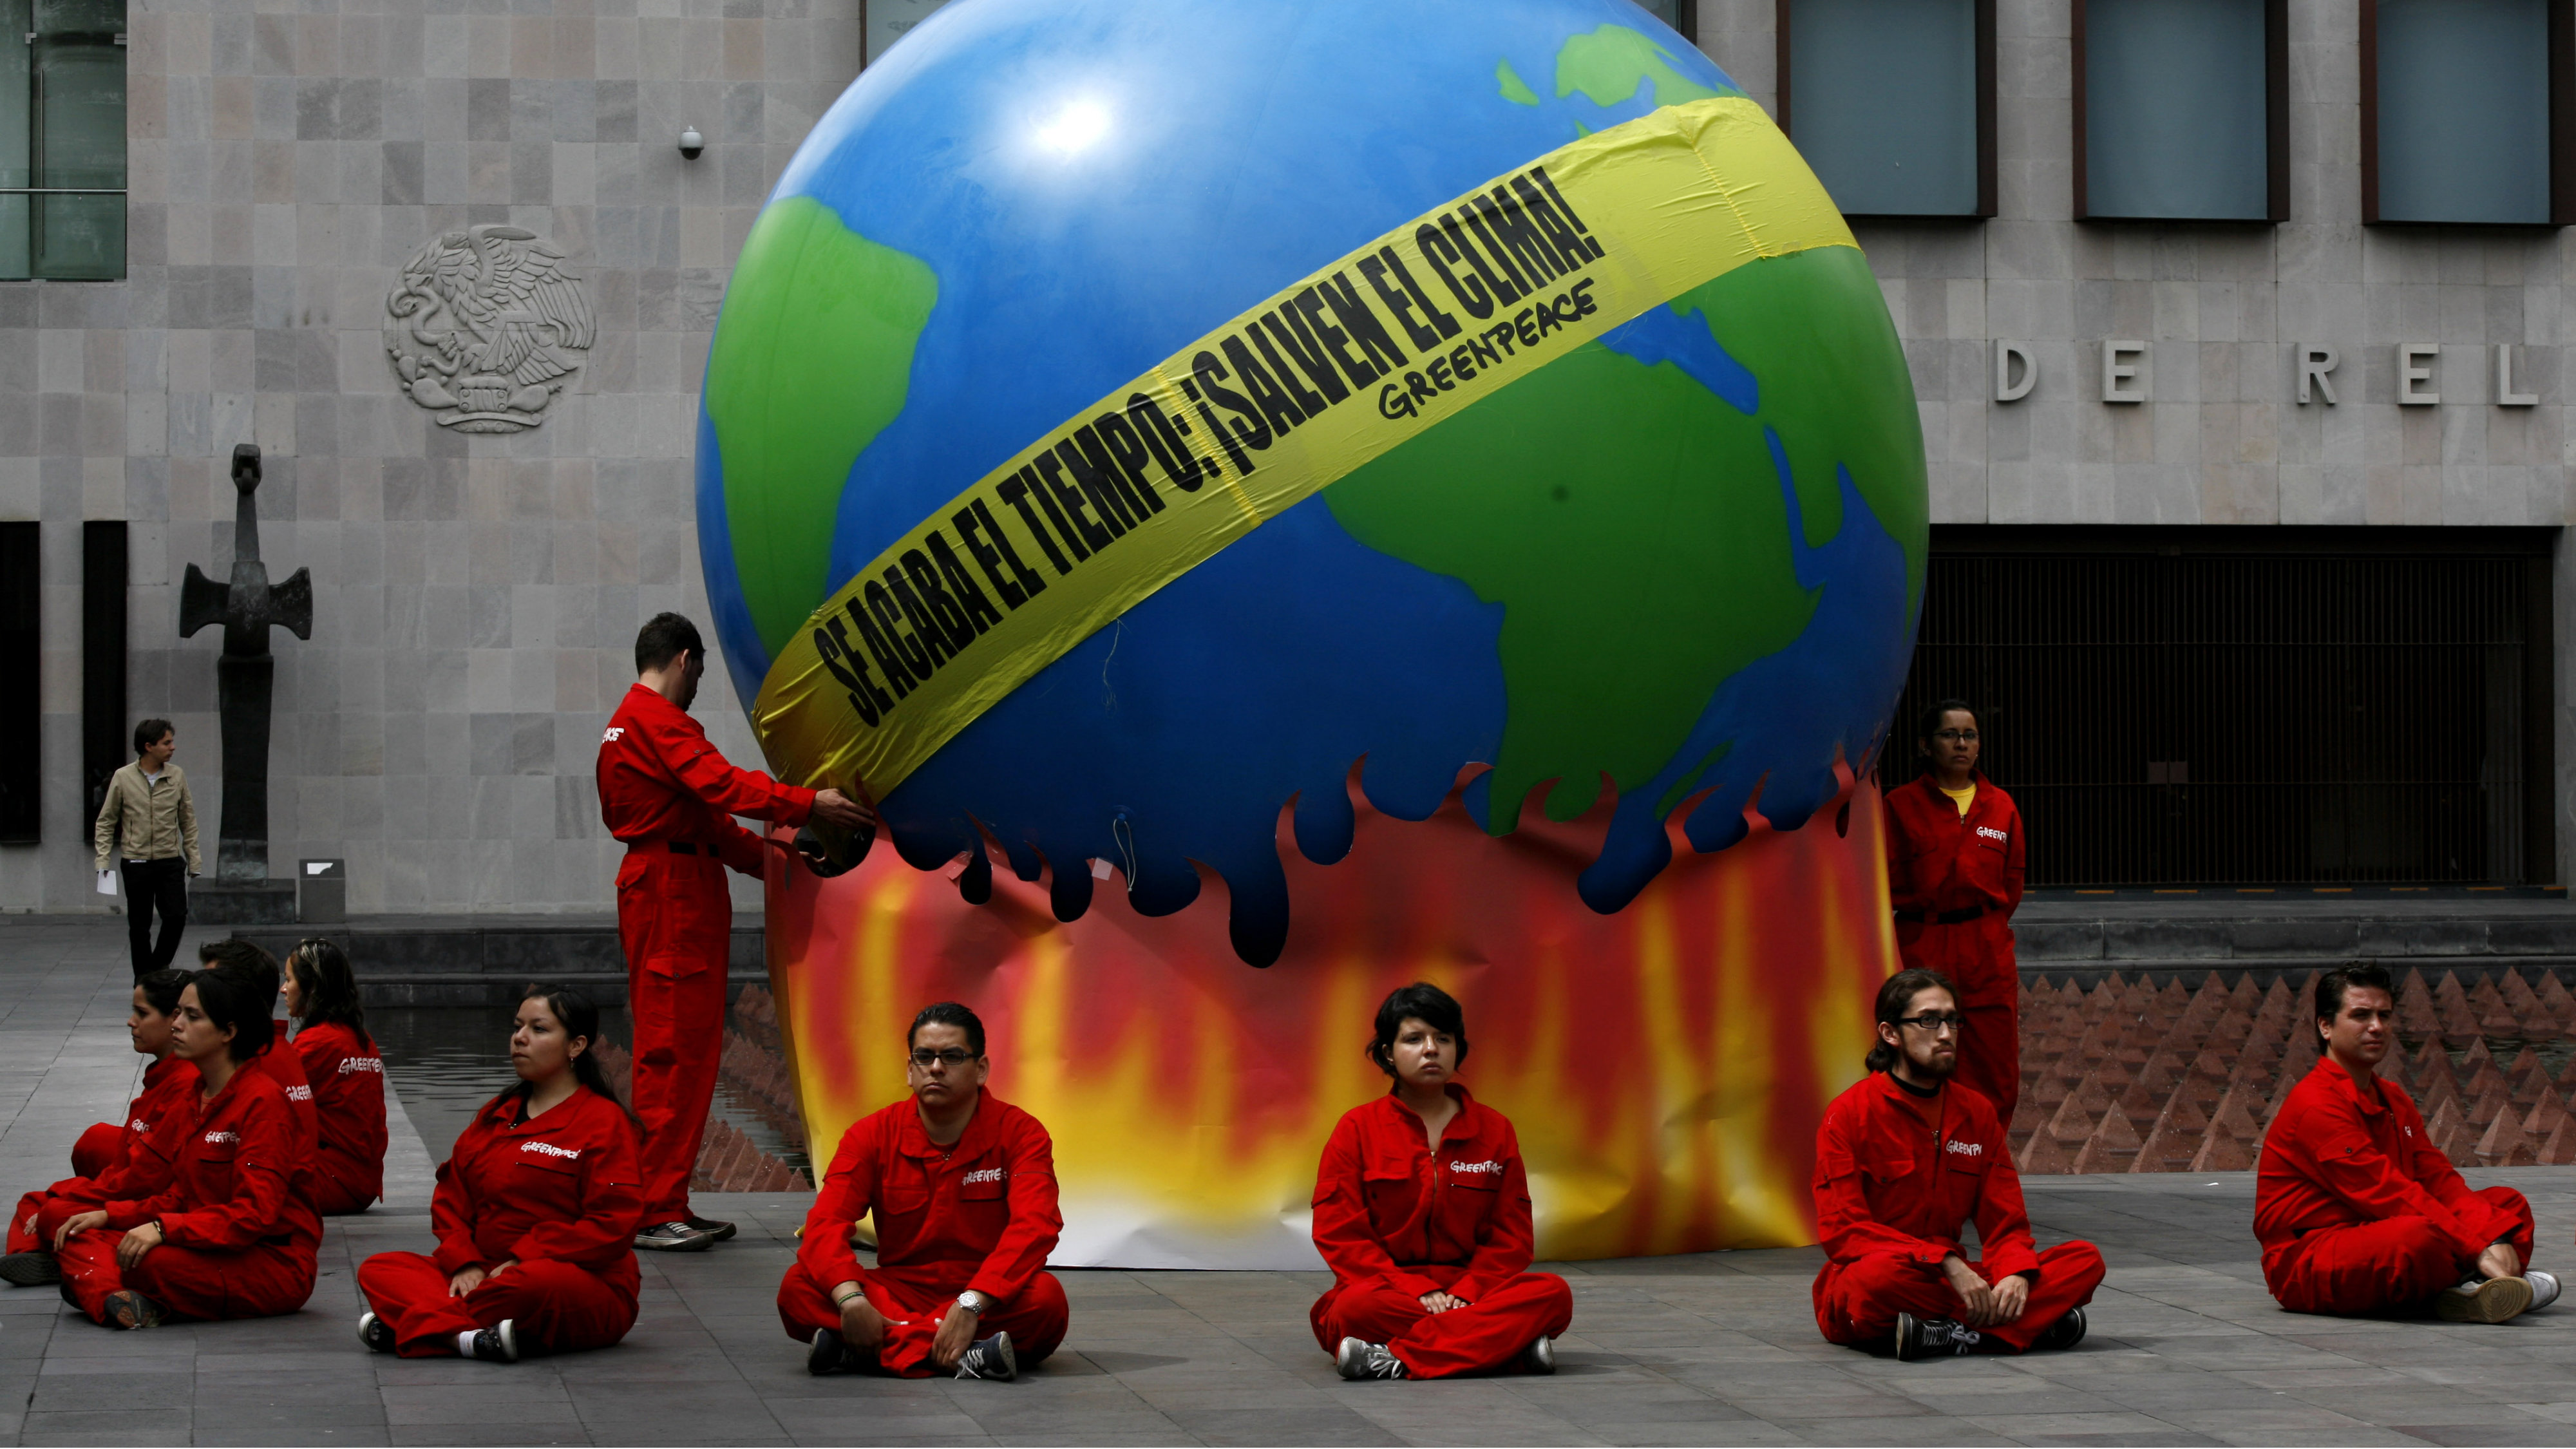 """Greenpeace activists stage a protest with an earth-shaped balloon in front of Mexico Secretary of Foreign Relations in Mexico City, Thursday Aug. 27, 2009. The protest was held to ask Mexican authorities to have a stronger position on global warming and climate change. Banner across the globe reads: """"Time is running out. Save the climate."""""""